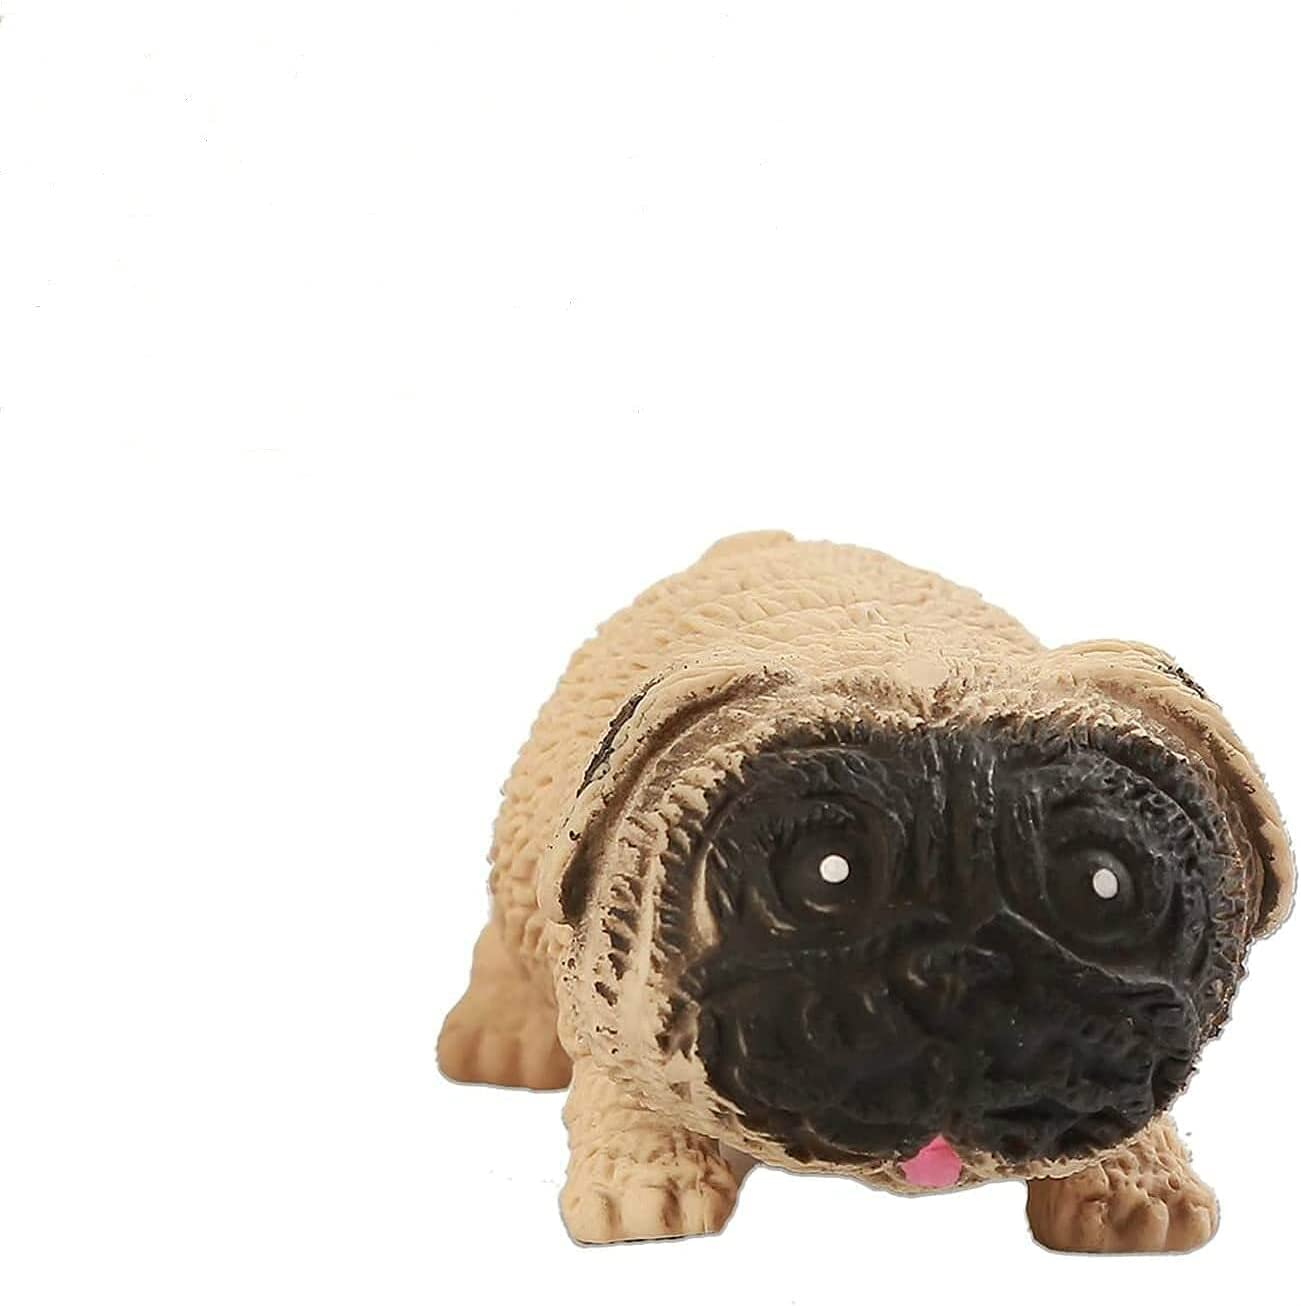 lowest High order price Hailiang Sensory Stress Pug Dog Toys Children for Adults Teens K